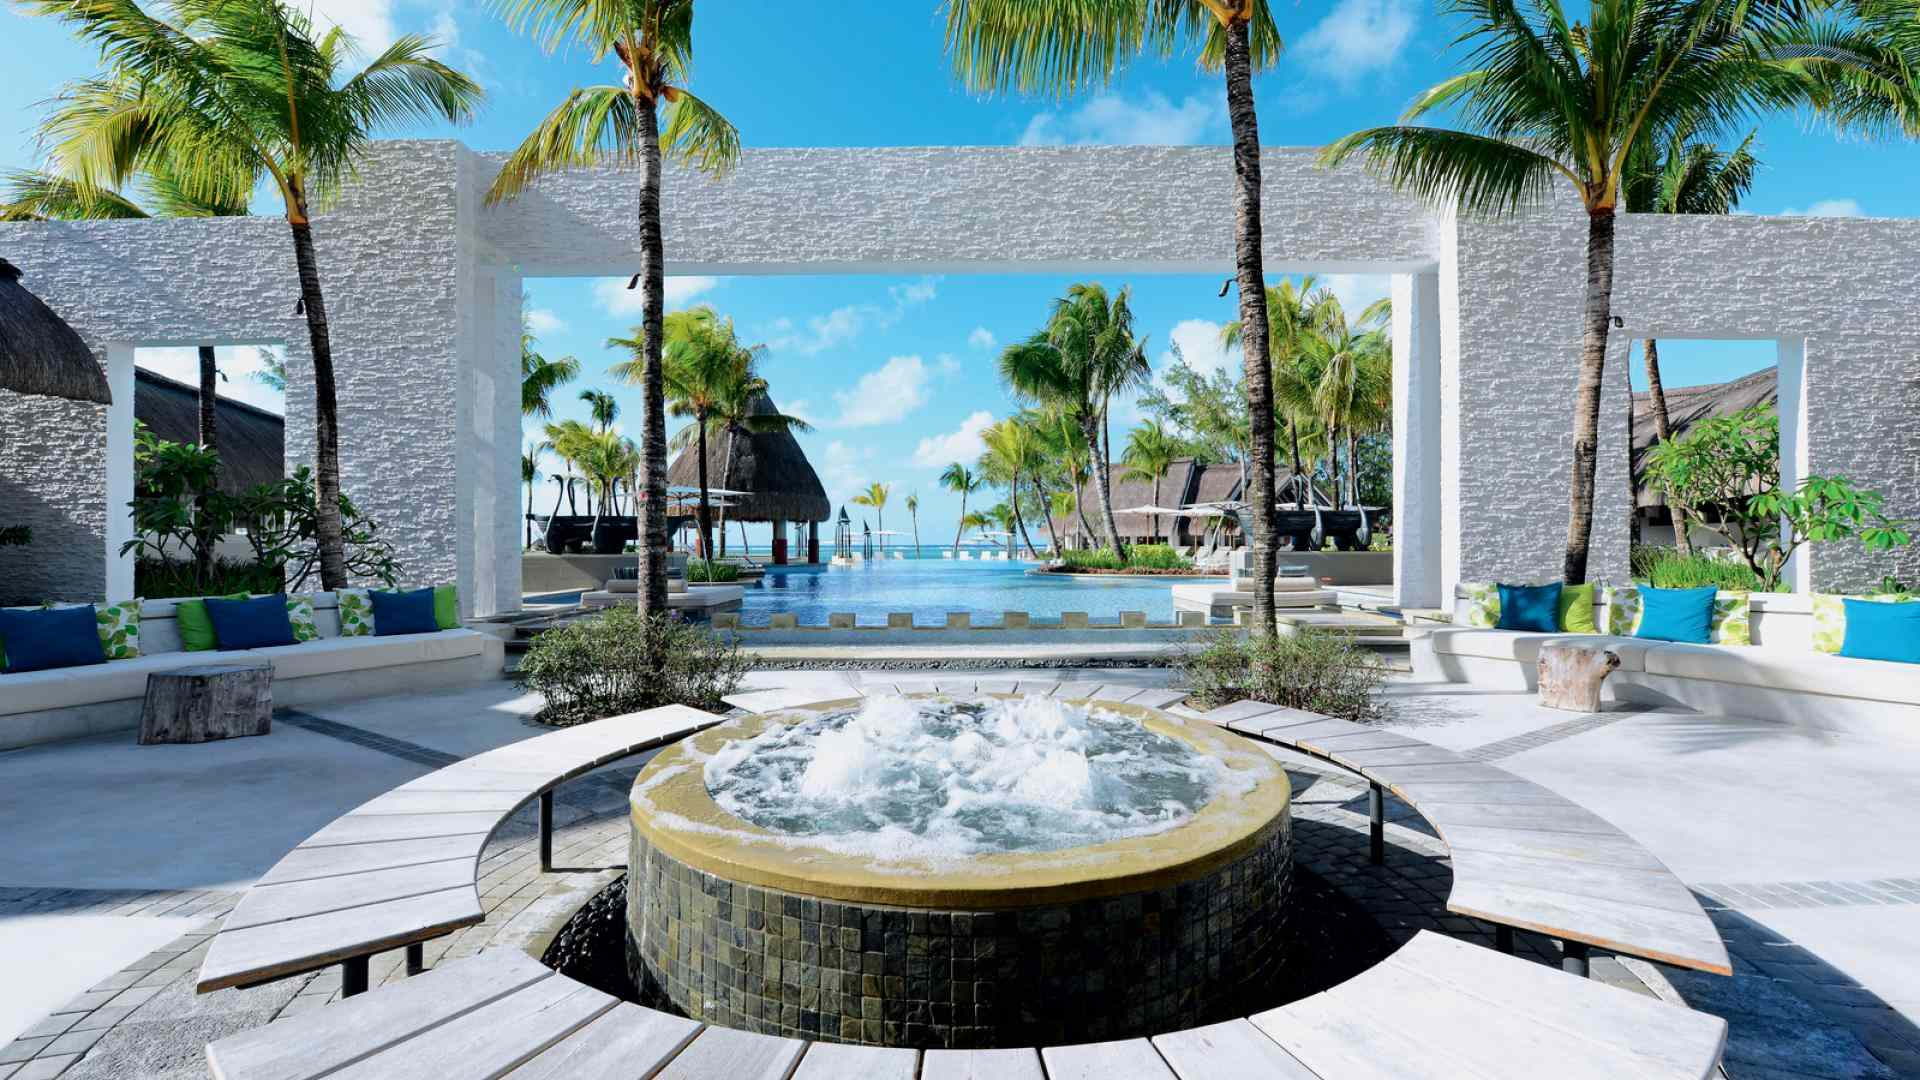 Ambre A Sun Resort Mauritius An Adult Only Hotel In Mauritius